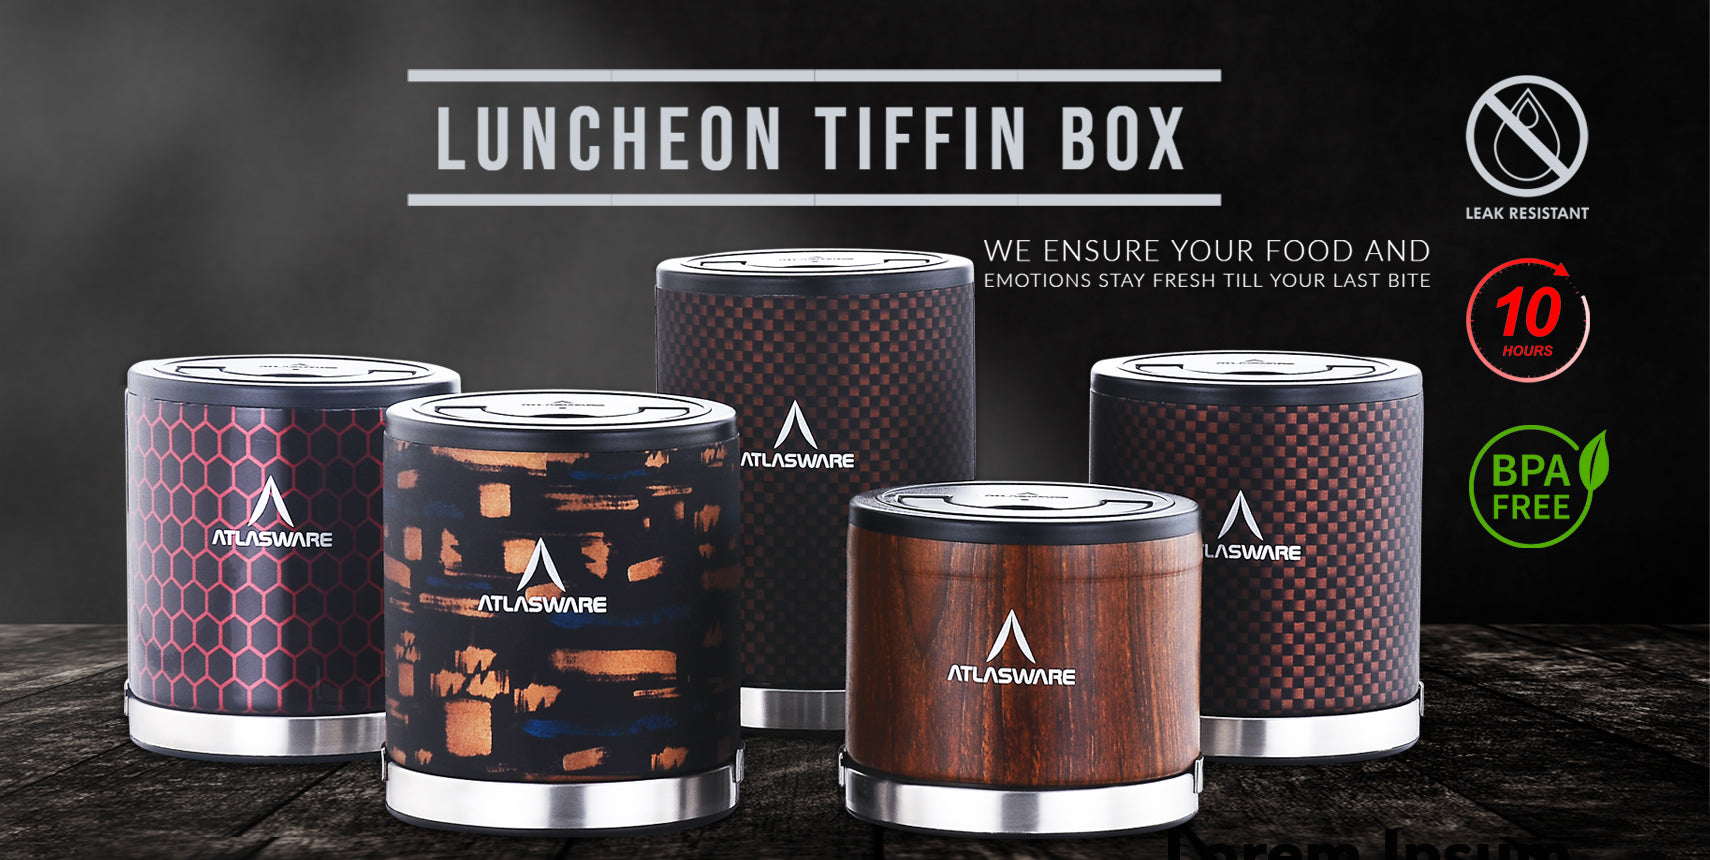 Atlasware Luncheon <br> Tiffin Box <br>